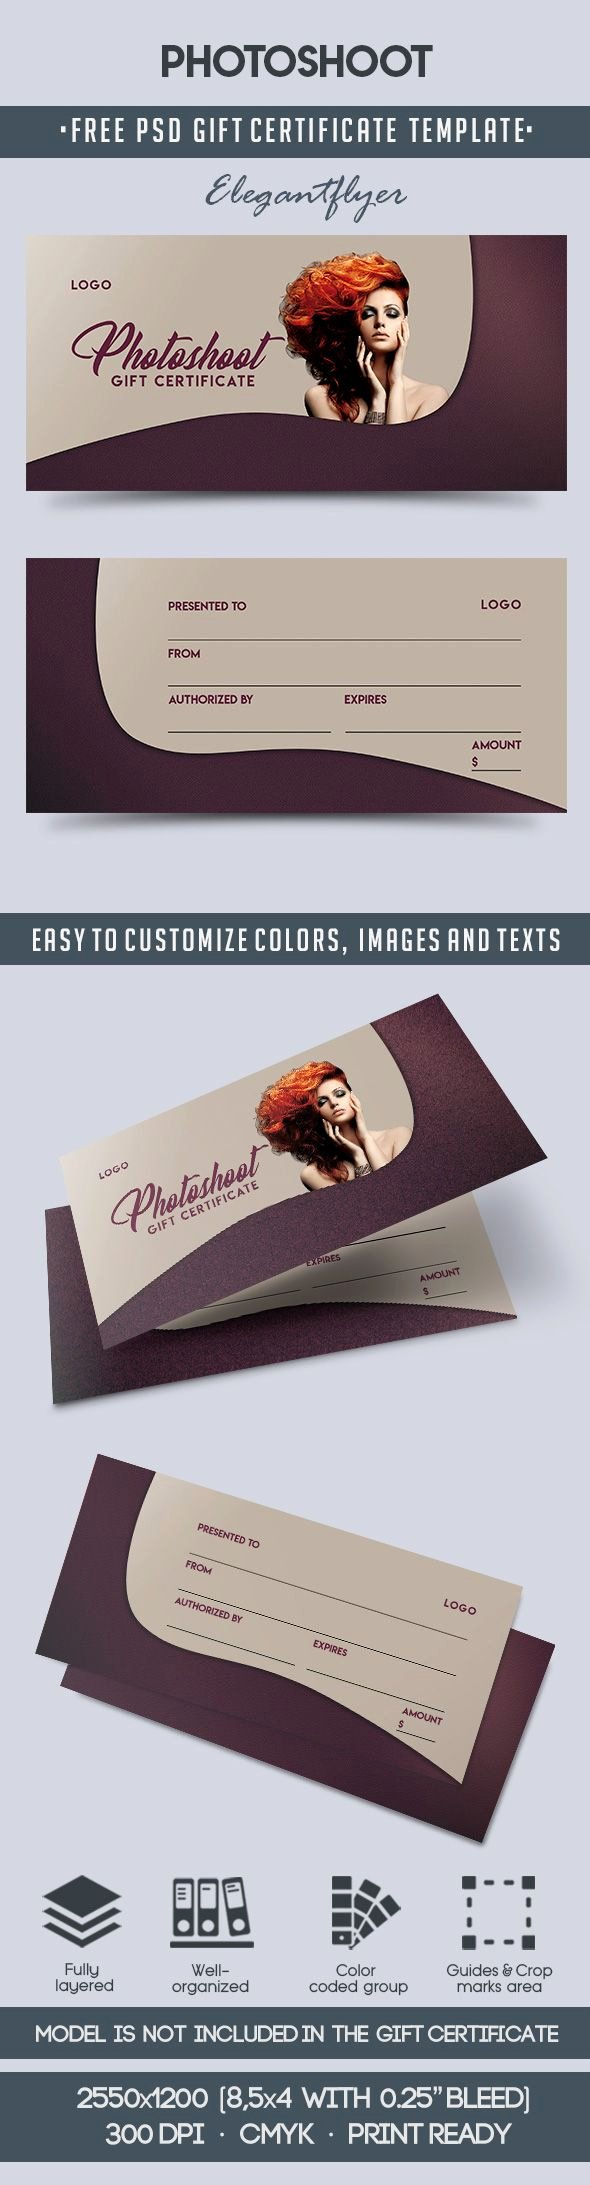 Photo Session Gift Certificate Template Awesome Shoot – Free Gift Certificate Psd Template – by